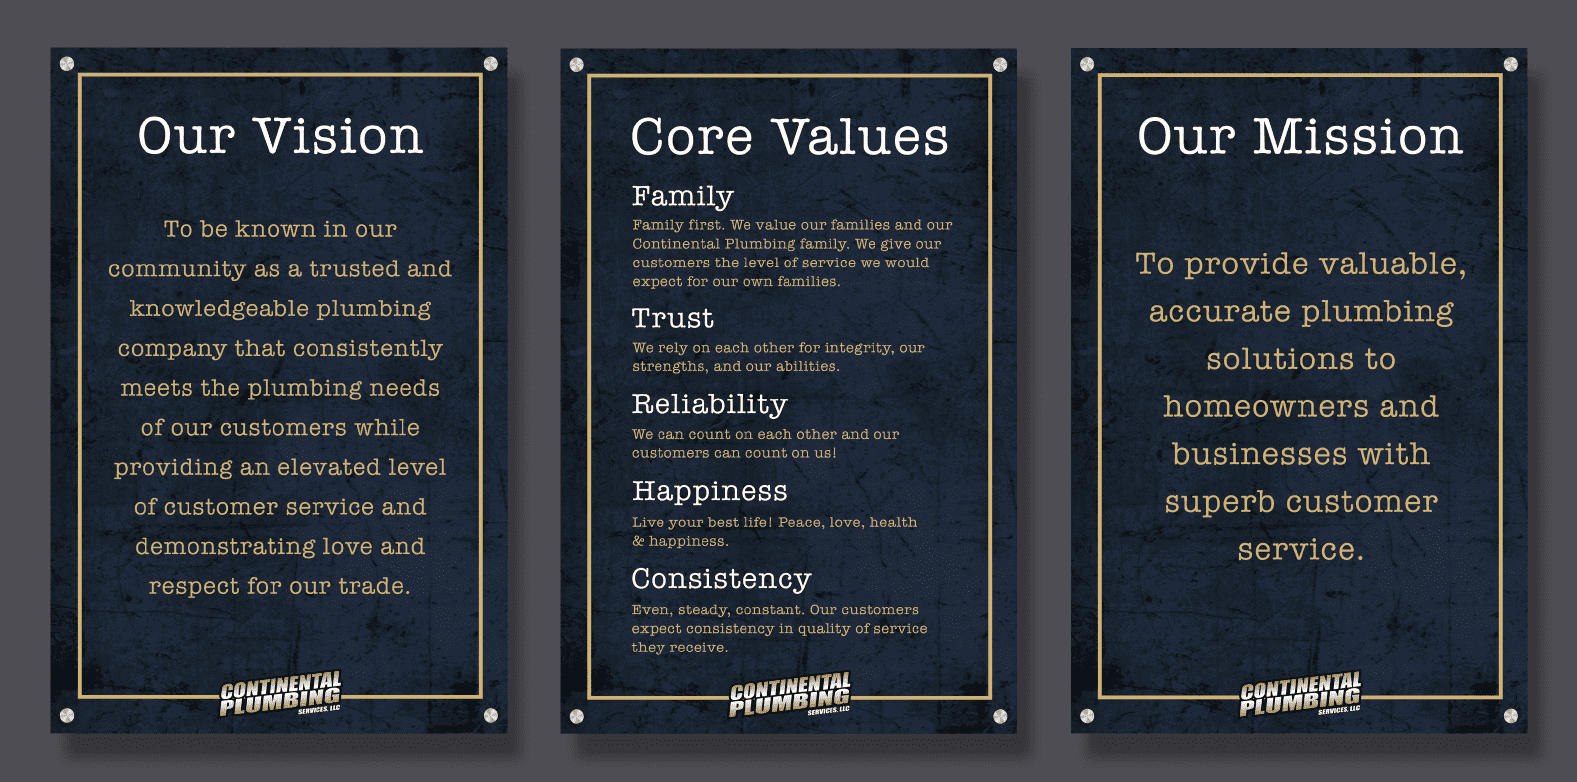 Our Vision. Core Values. Our Mission.